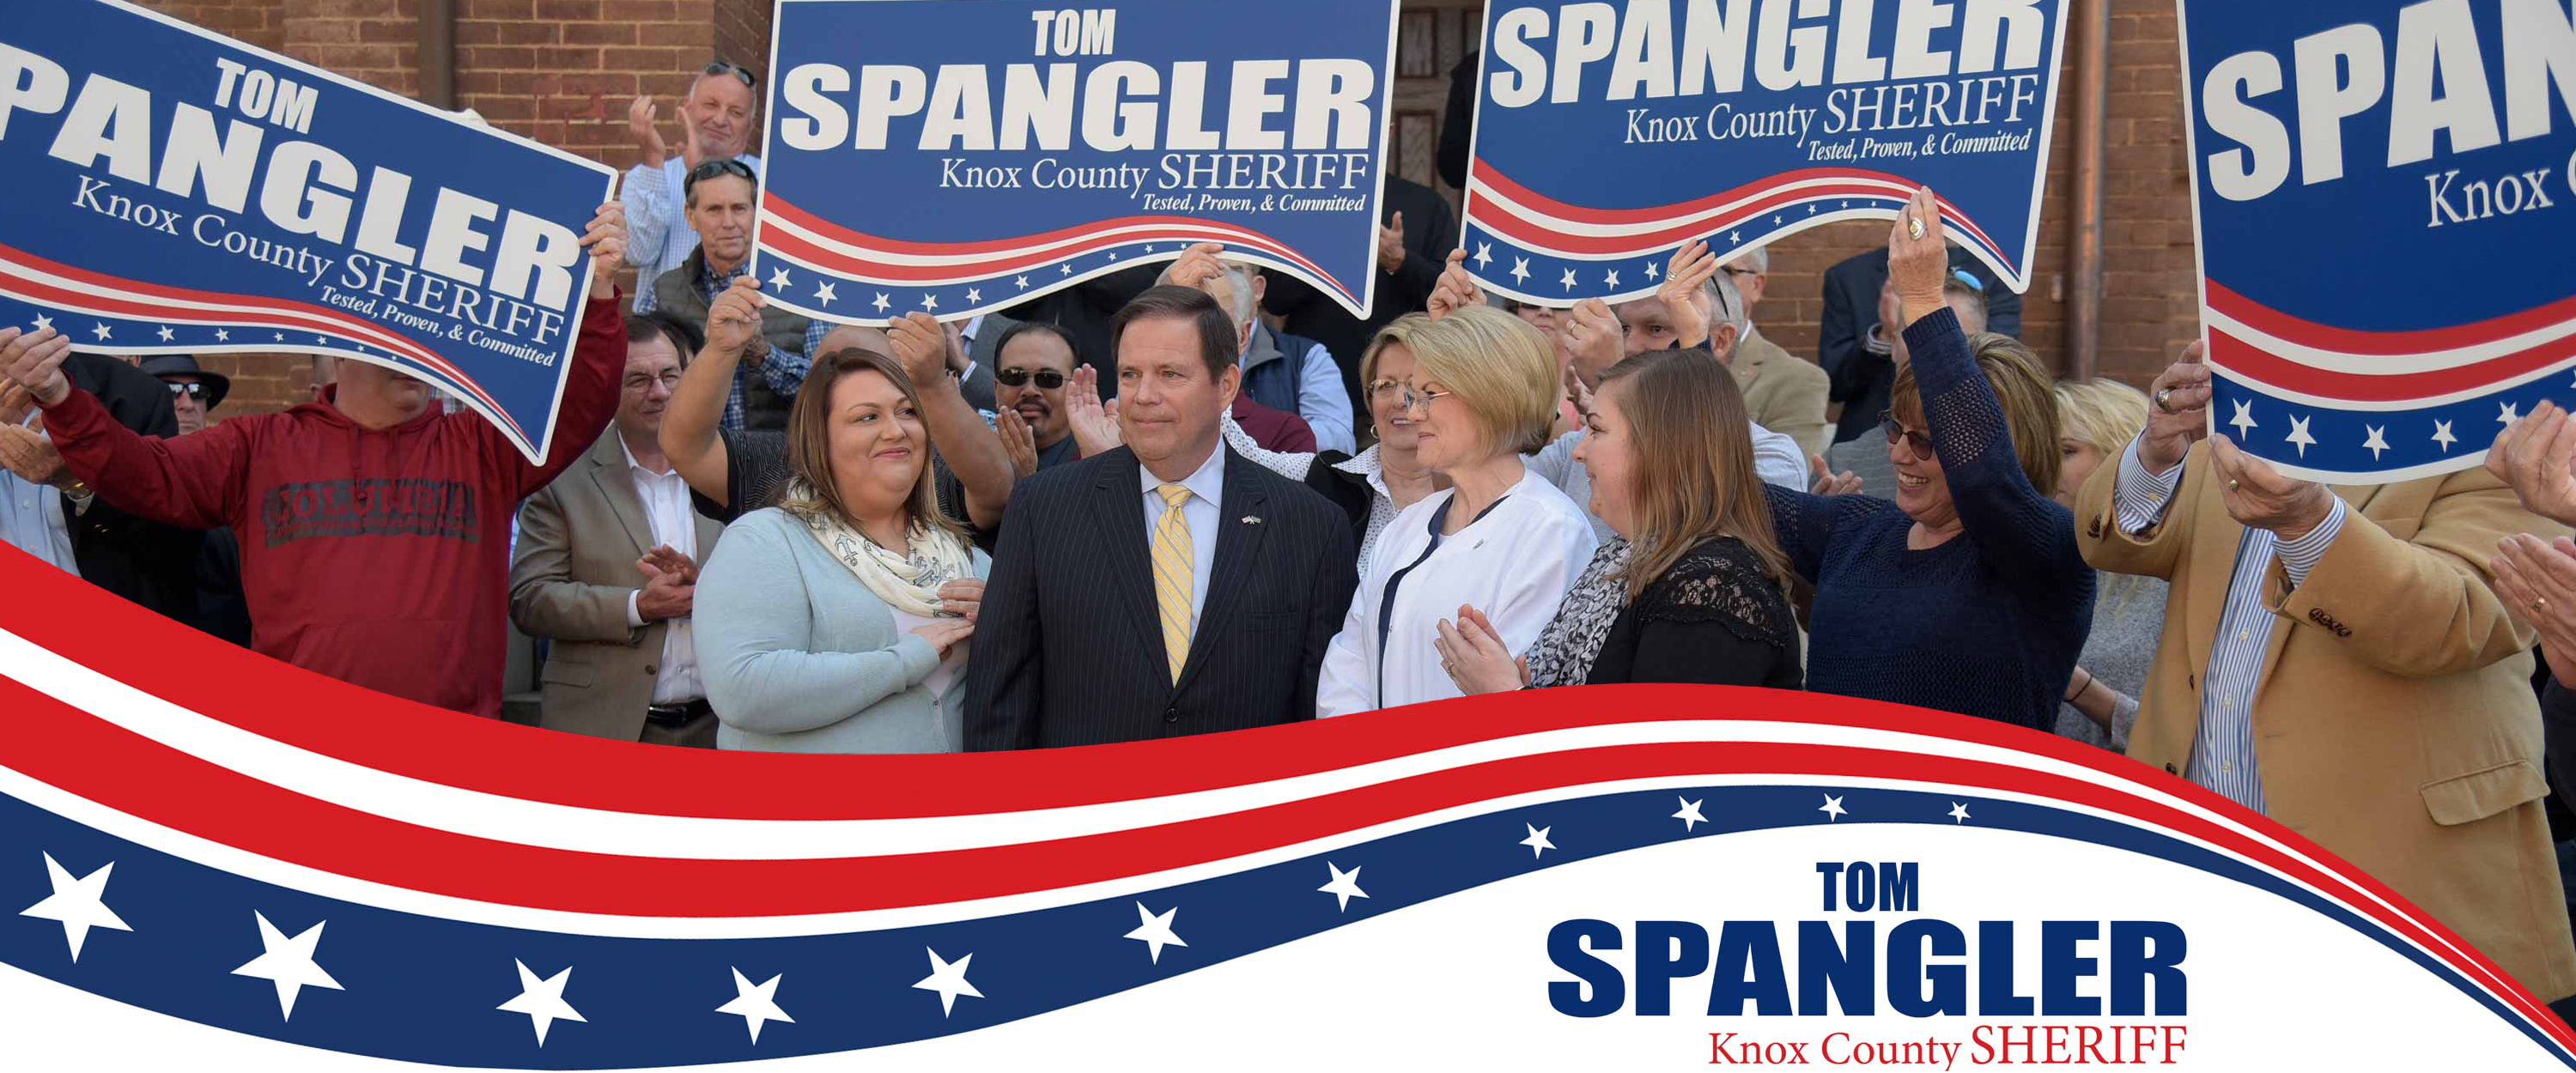 Tom Spangler Surrounded by Supporters at the Campaign Kickoff